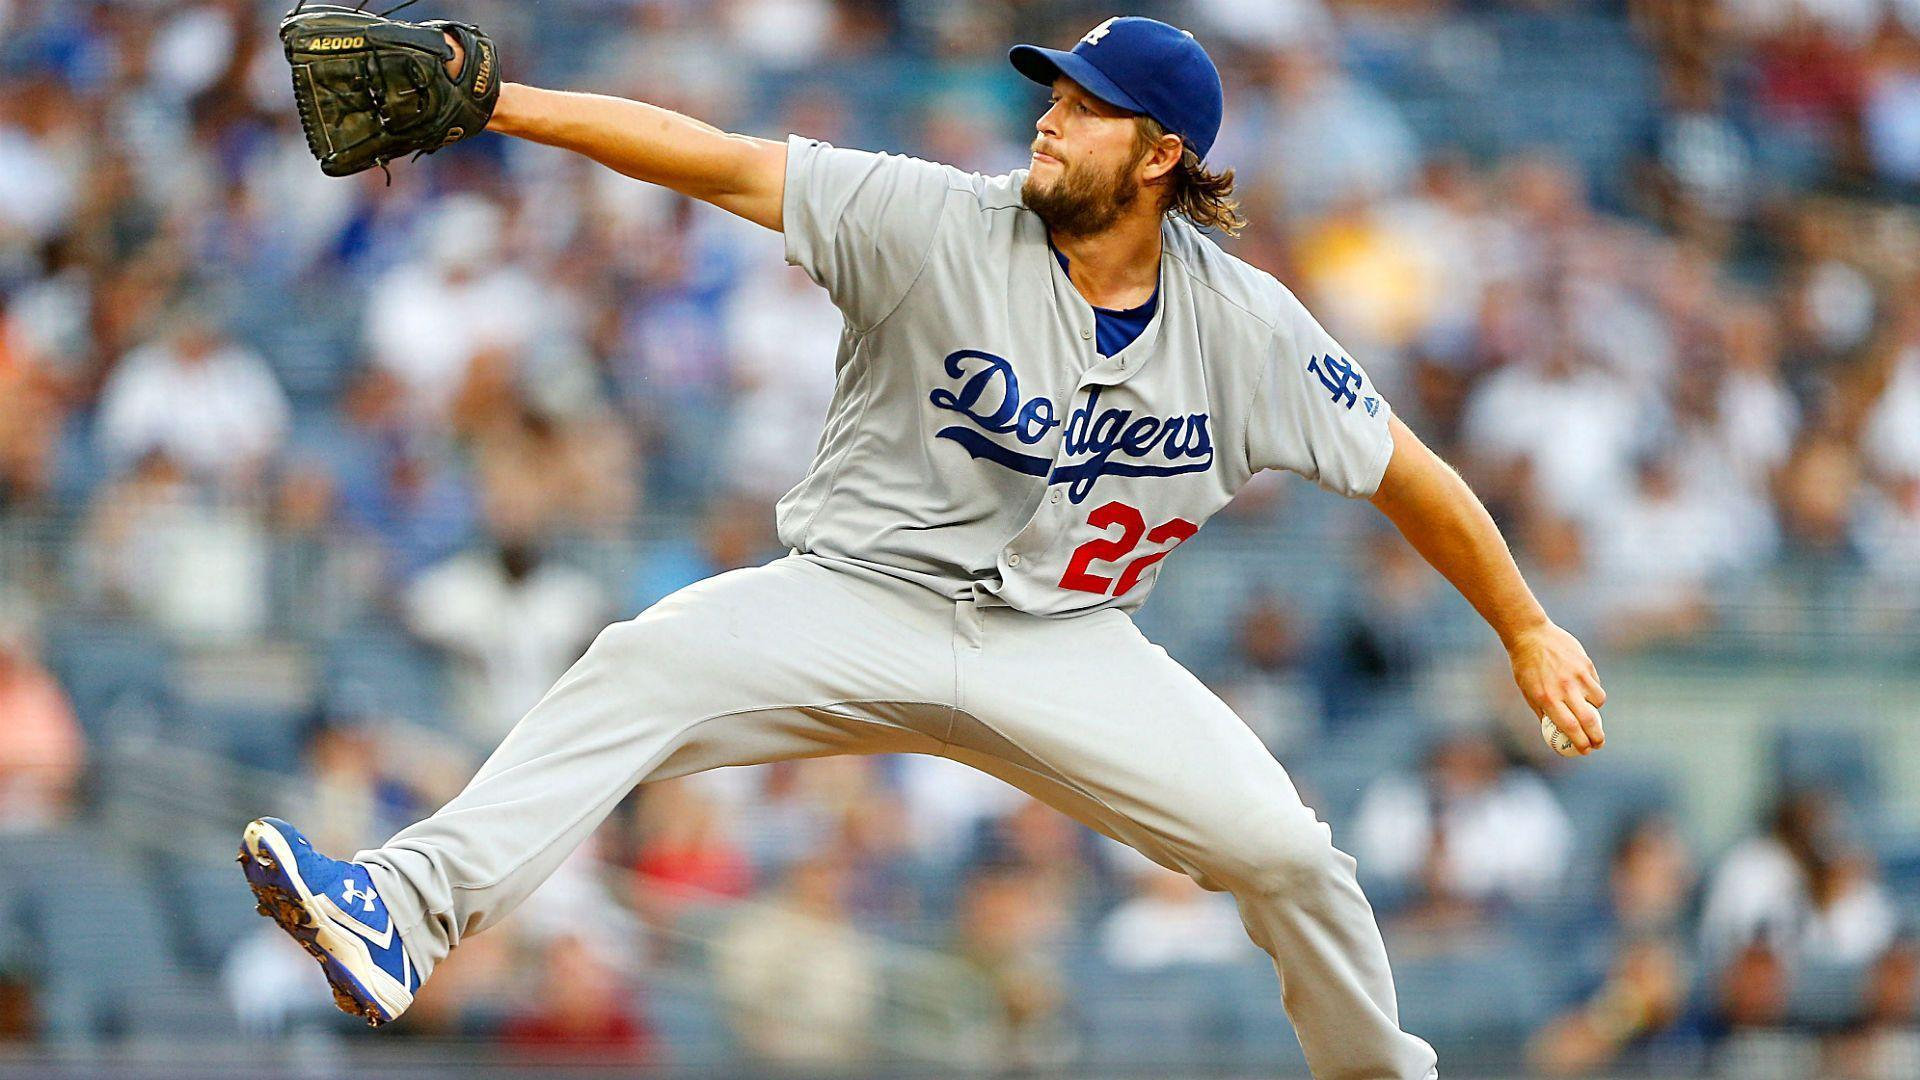 Clayton Kershaw gives up a hit, so his start was just 'OK,' he